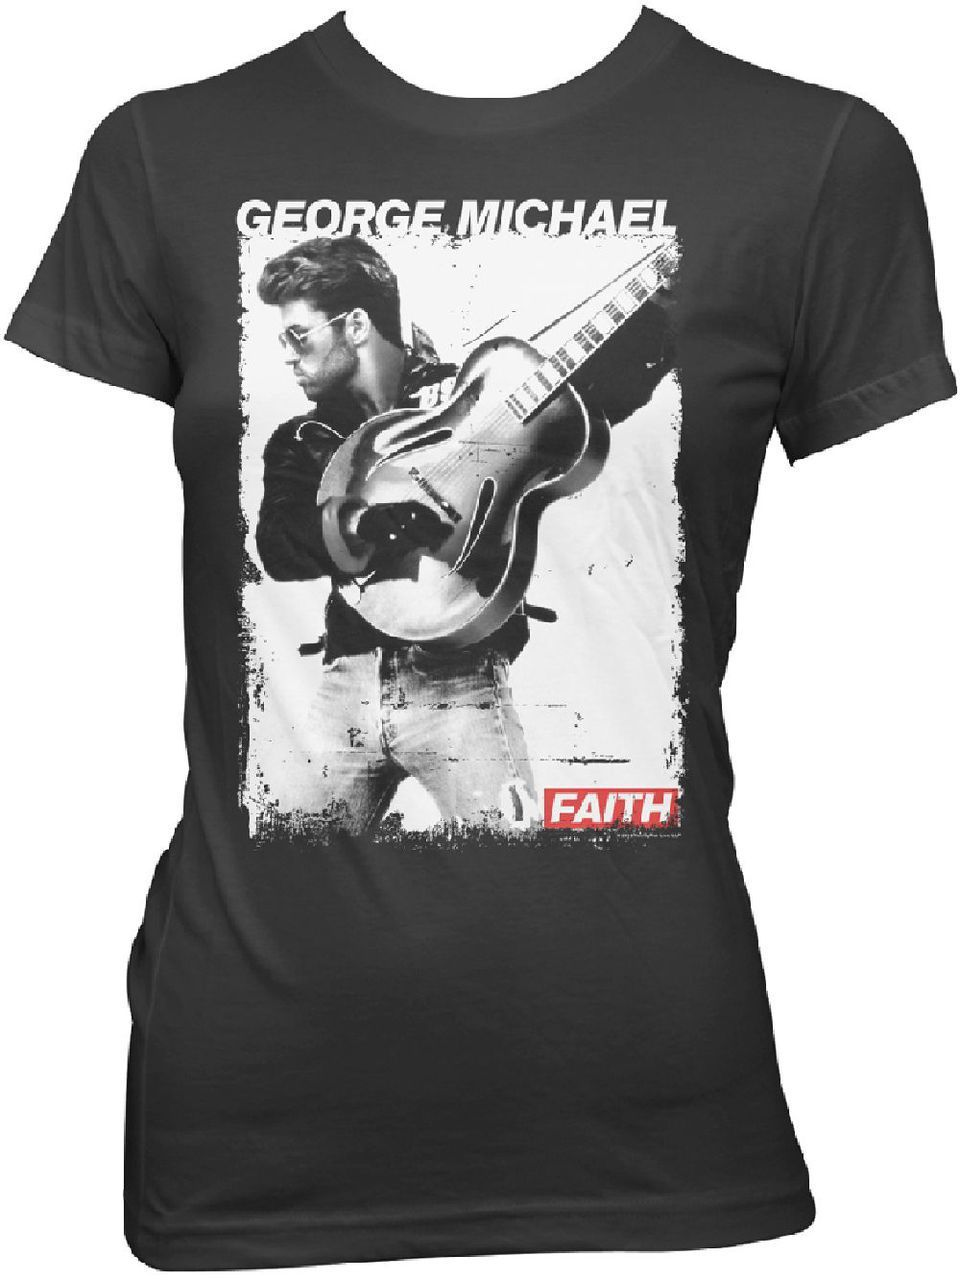 Black t shirt michaels - George Michael Women S T Shirt George Michael Faith Music Video Photograph Black Shirt